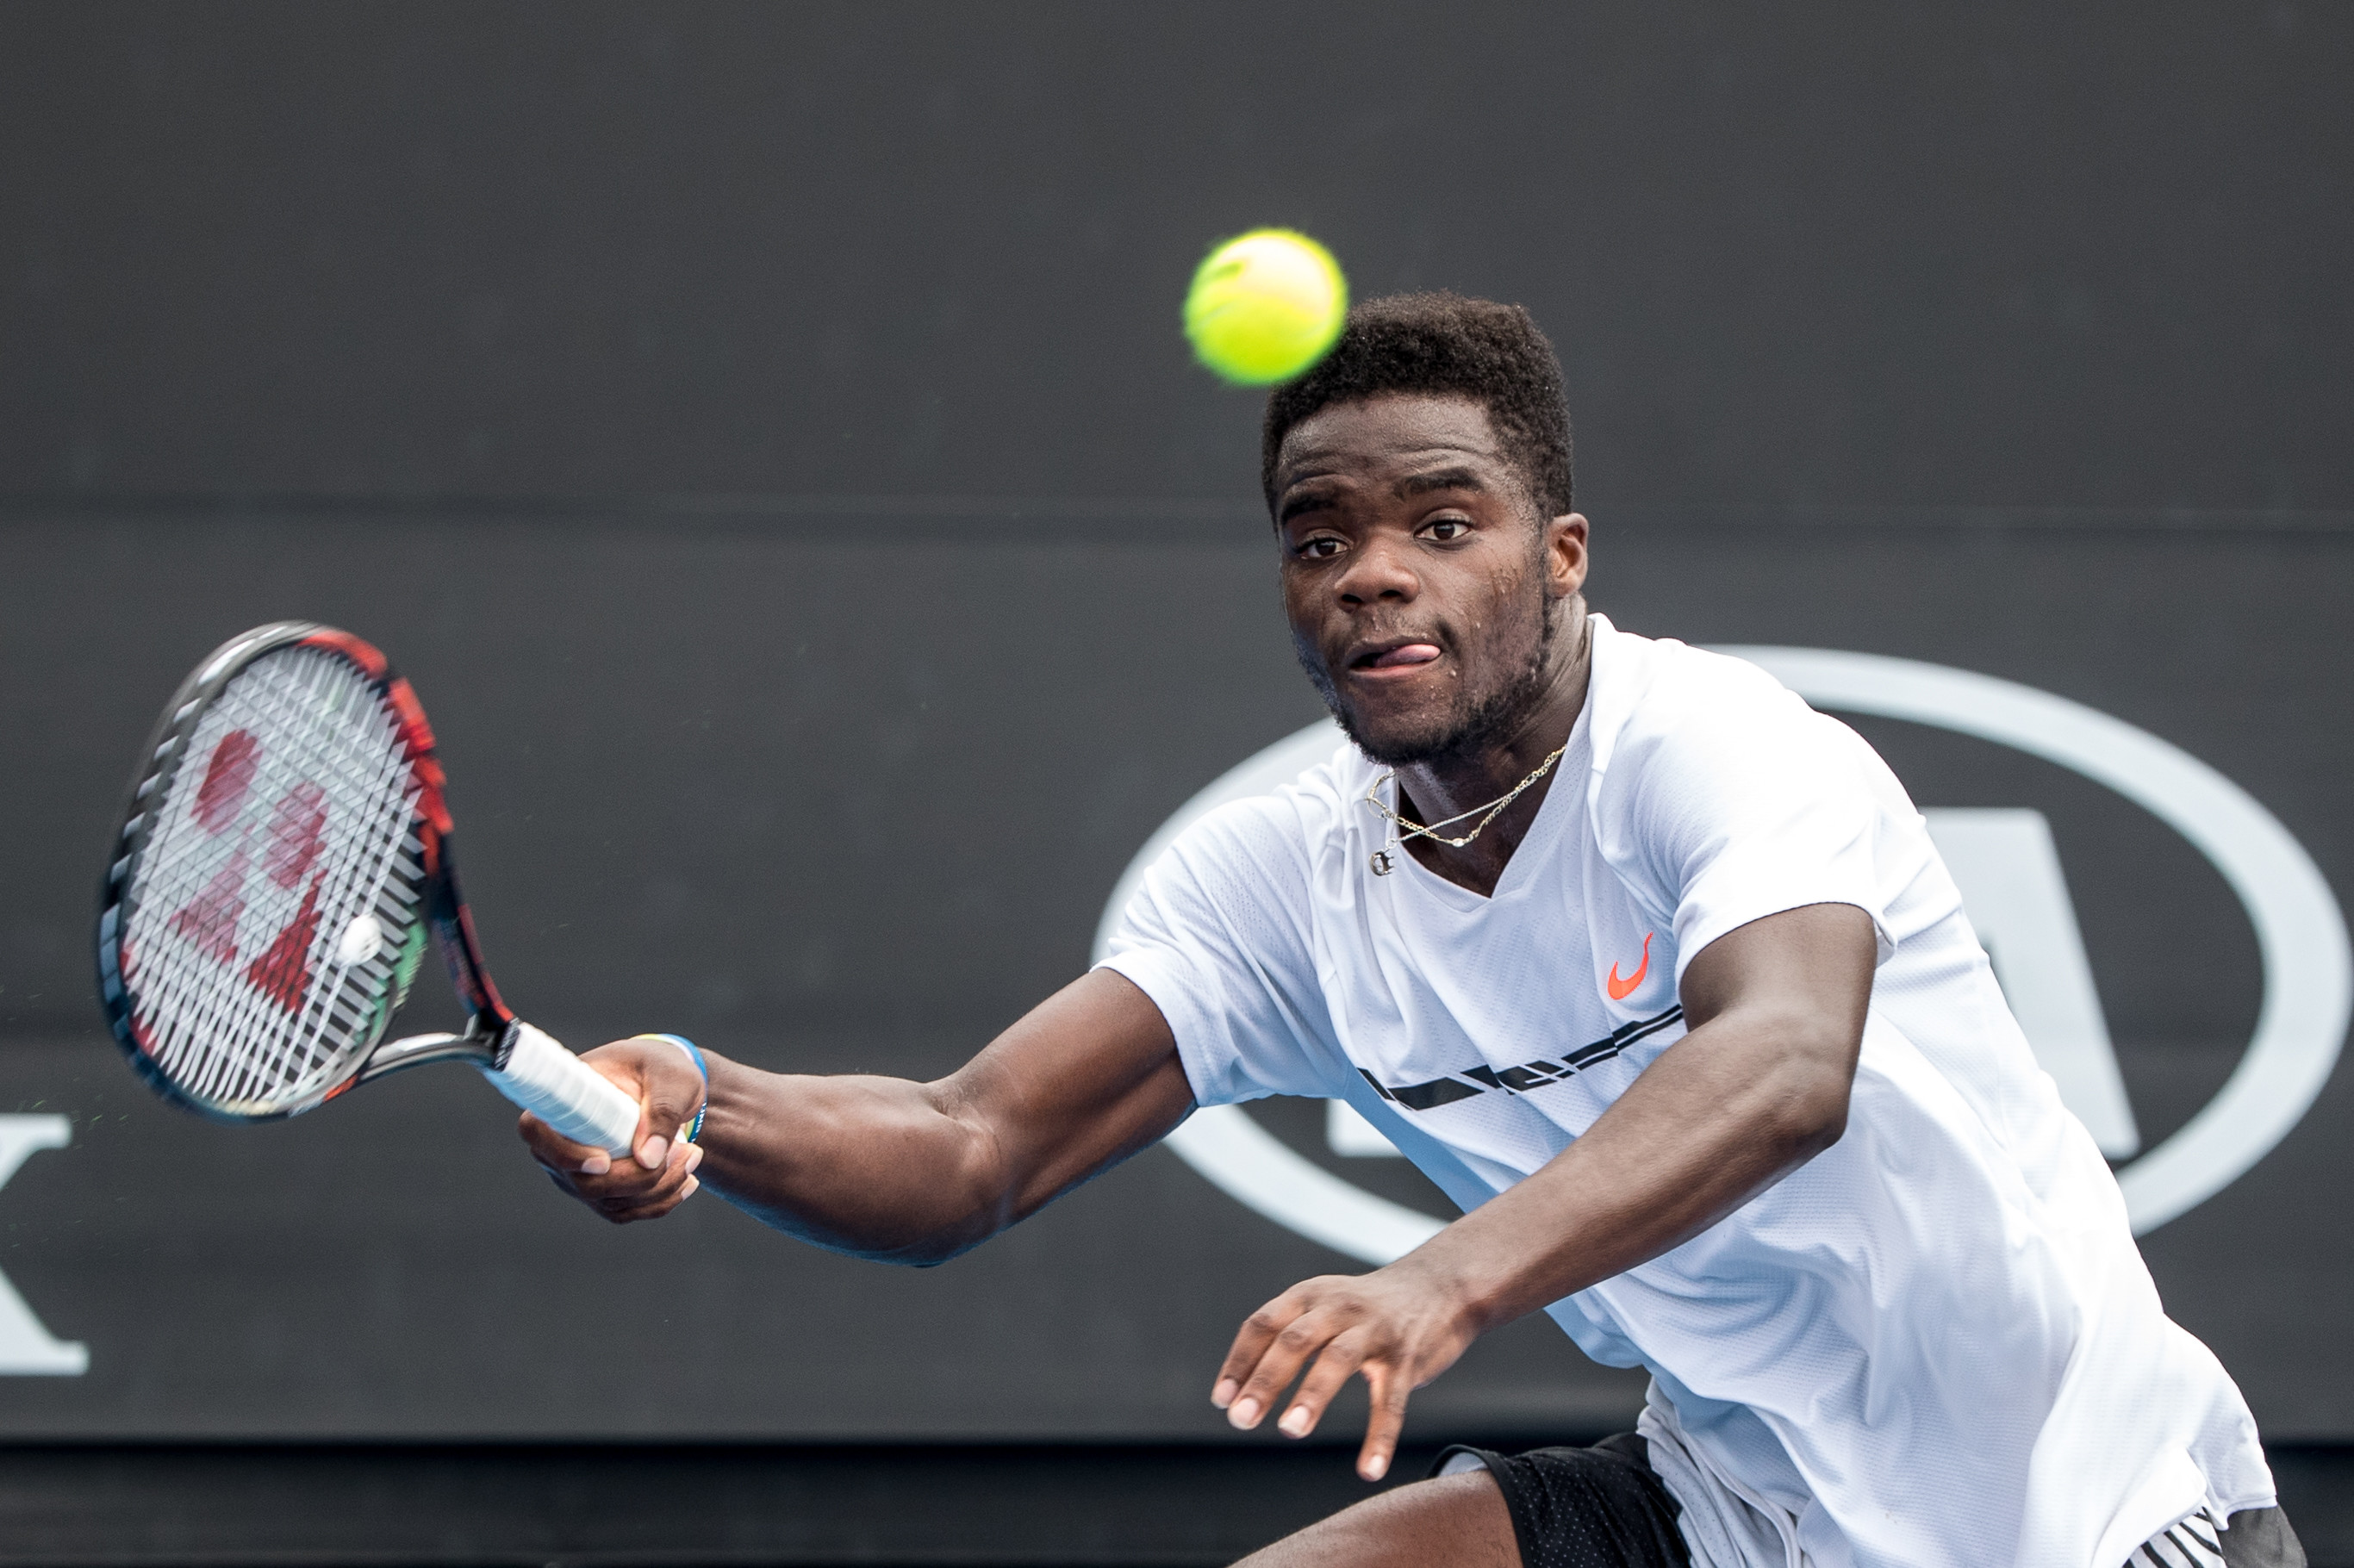 Frances Tiafoe of the United States of America returns the ball during the first round of the 2017 Australian Open on January 17, 2017, at Melbourne Park Tennis Centre in Melbourne, Australia.